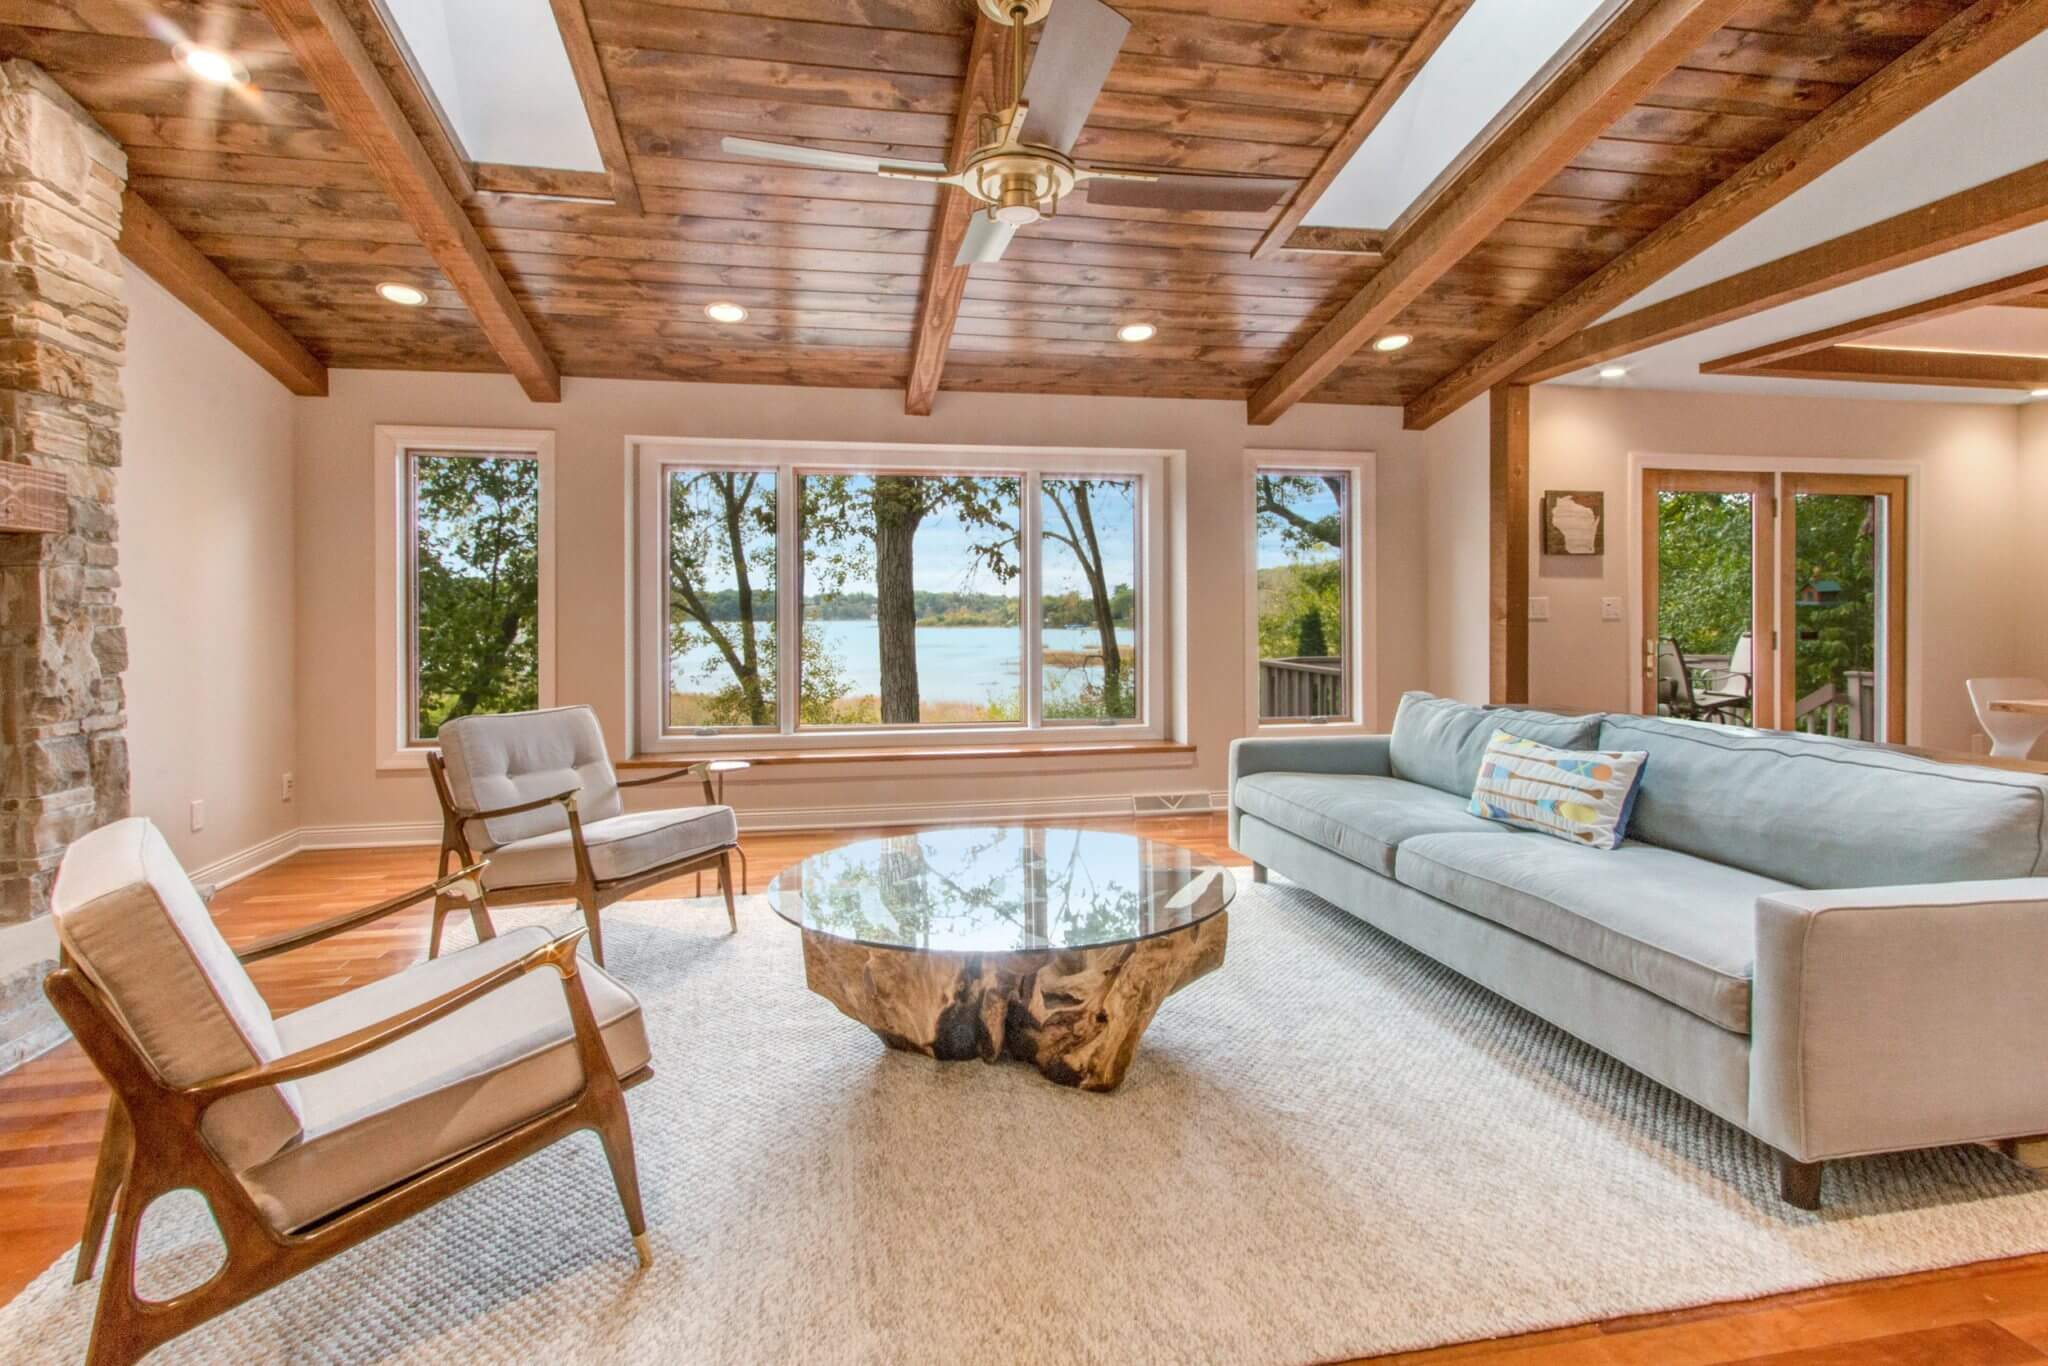 Contemporary-Rustic Home Remodel on Lake Beulah near East Troy, WI